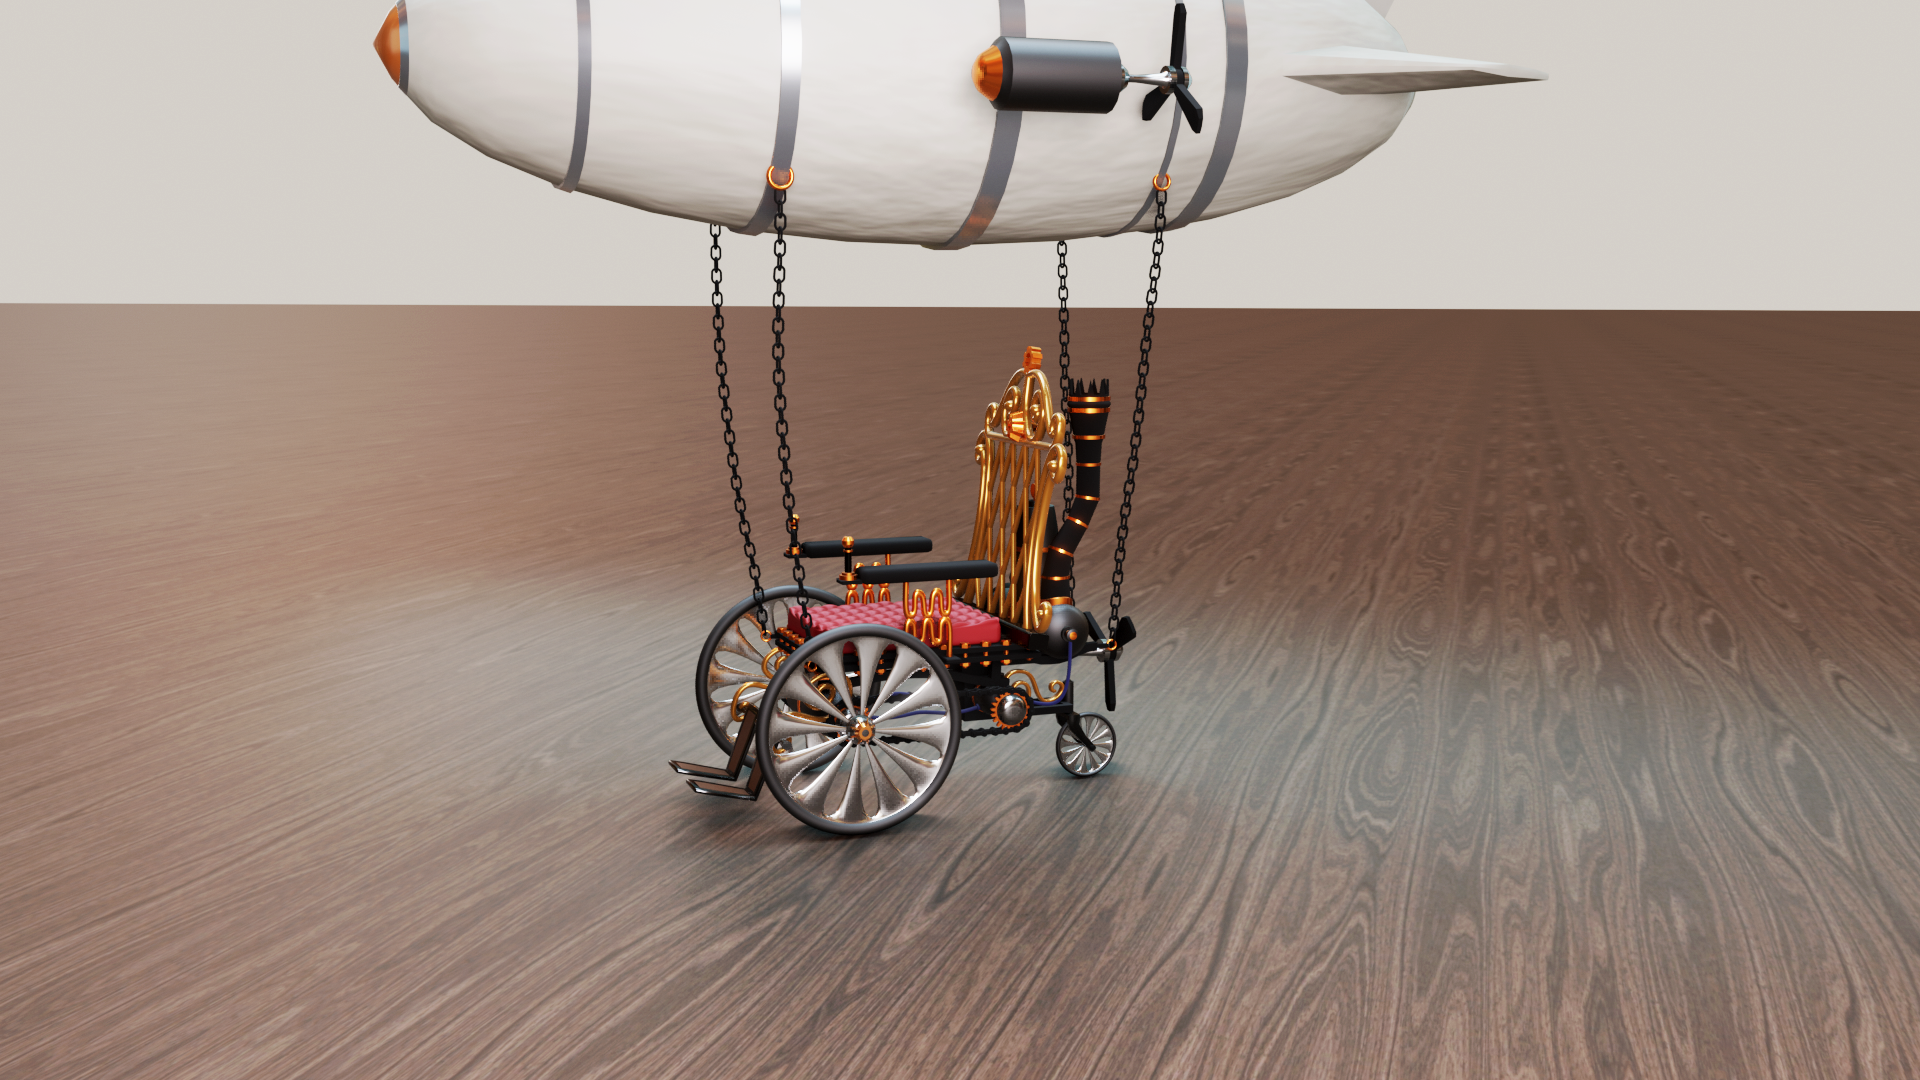 A steampunk wheelchair flying blimp